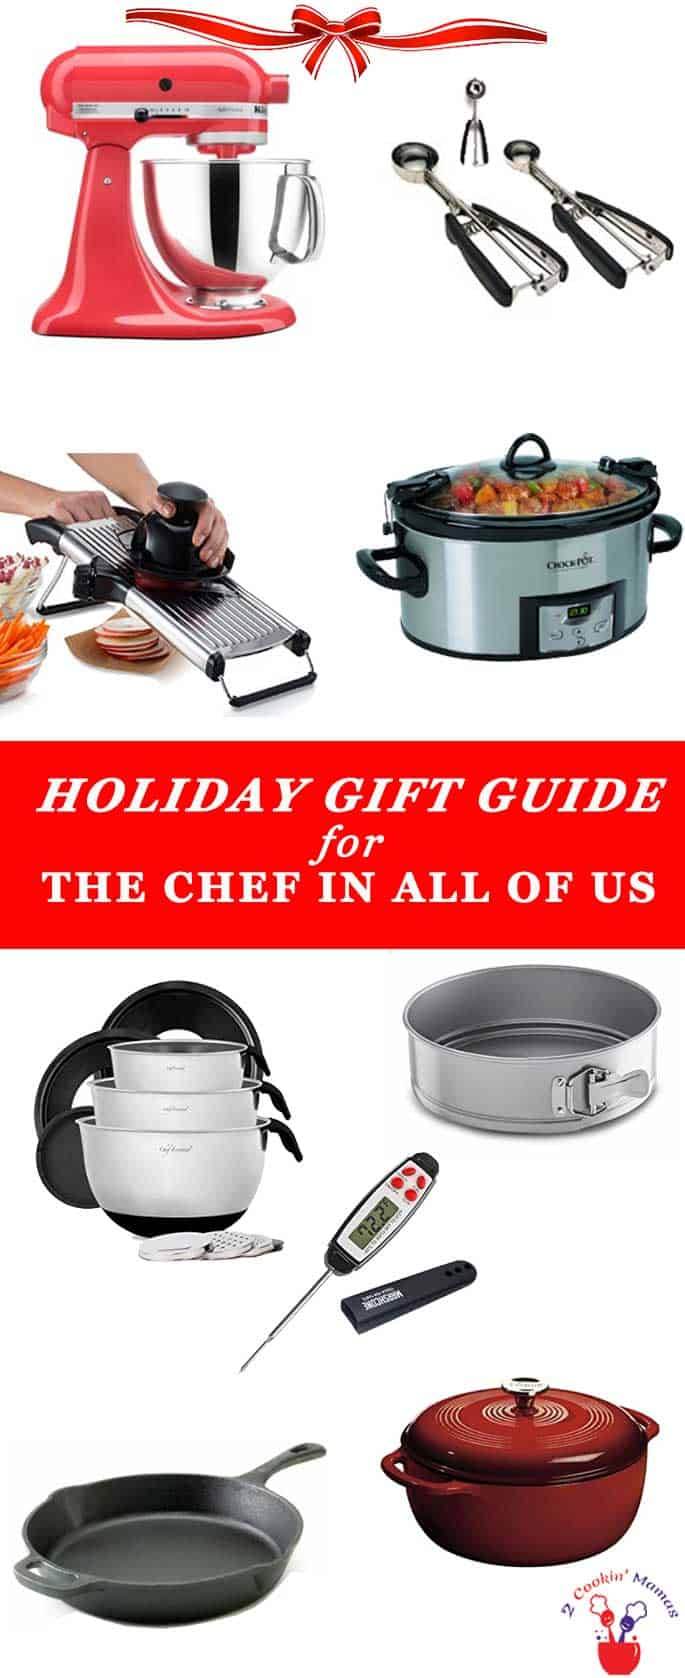 Here's a holiday gift guide of some of my favorite kitchen things to help you with your Christmas shopping.